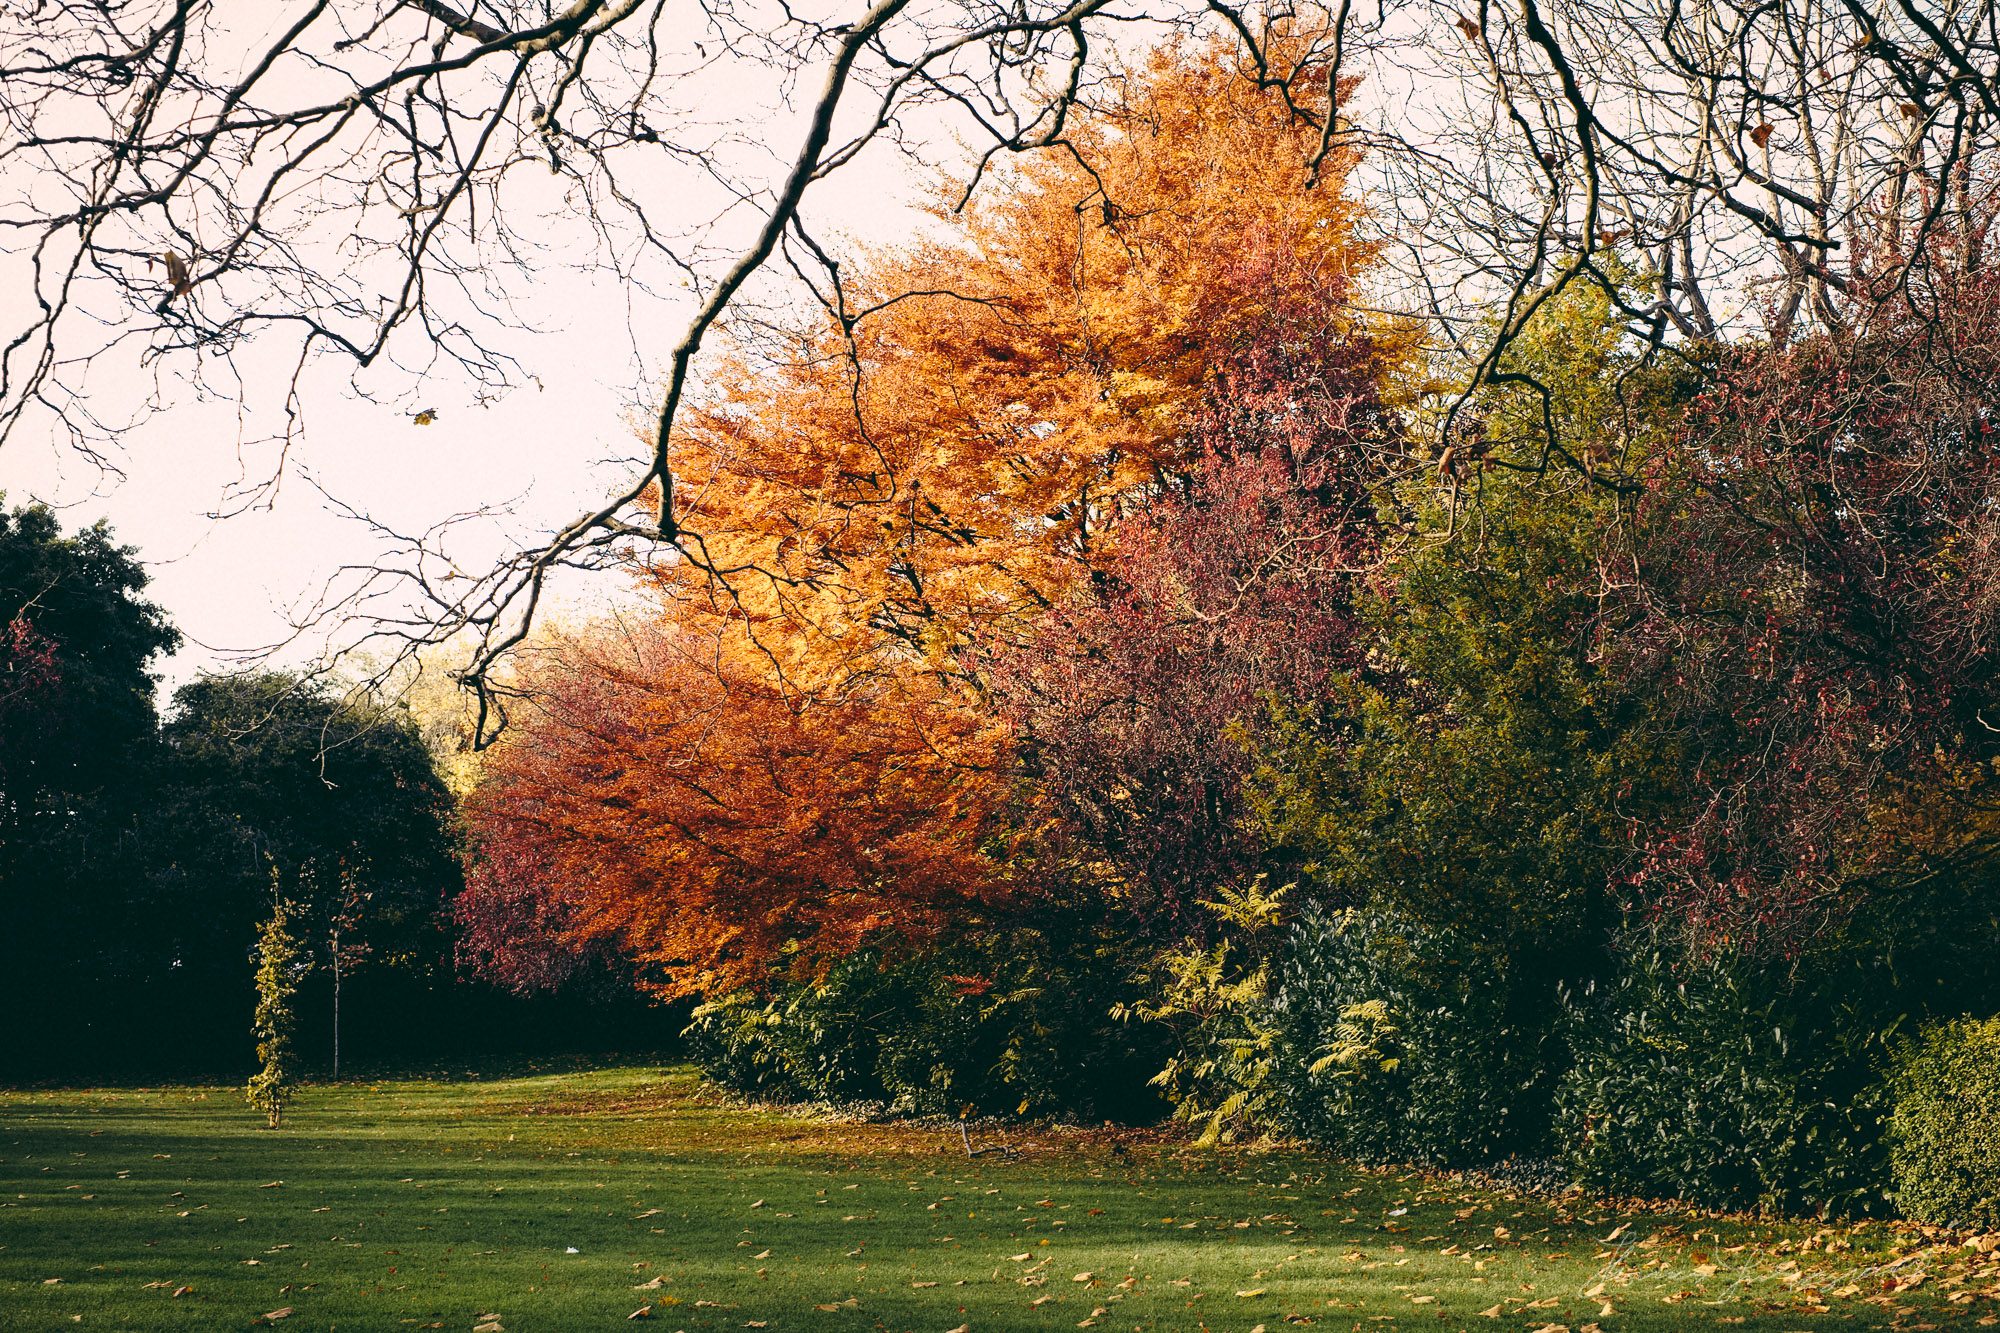 Autumn Colours - Fuji XE1, Processed with Iridient Developer